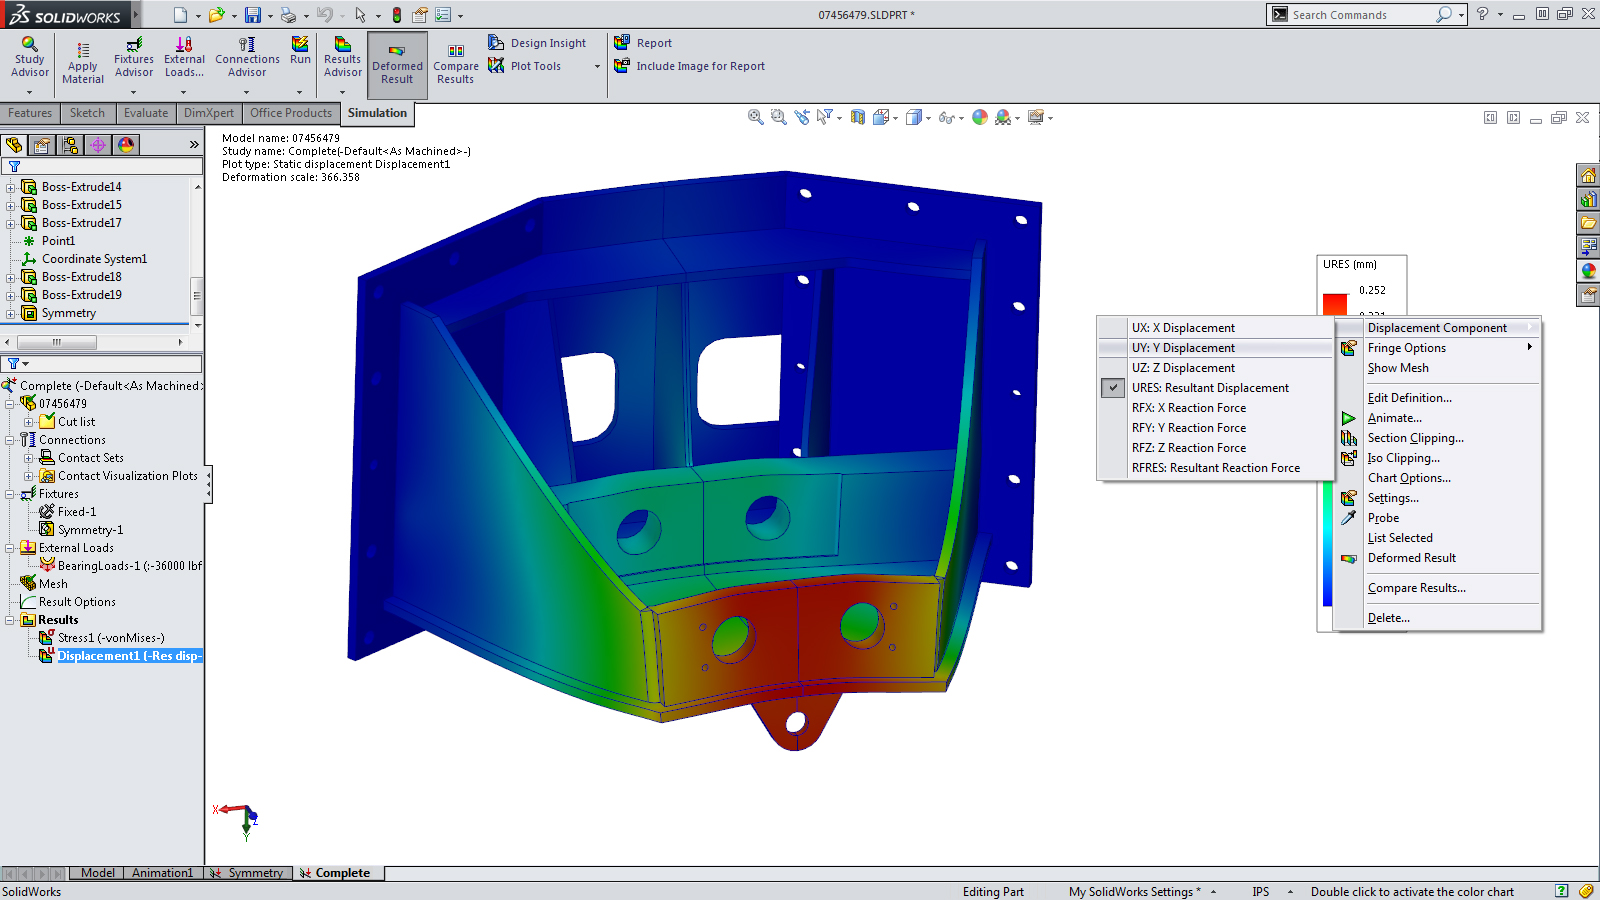 SolidWorks 2014 Sneak Peek: Results Interaction in Simulation